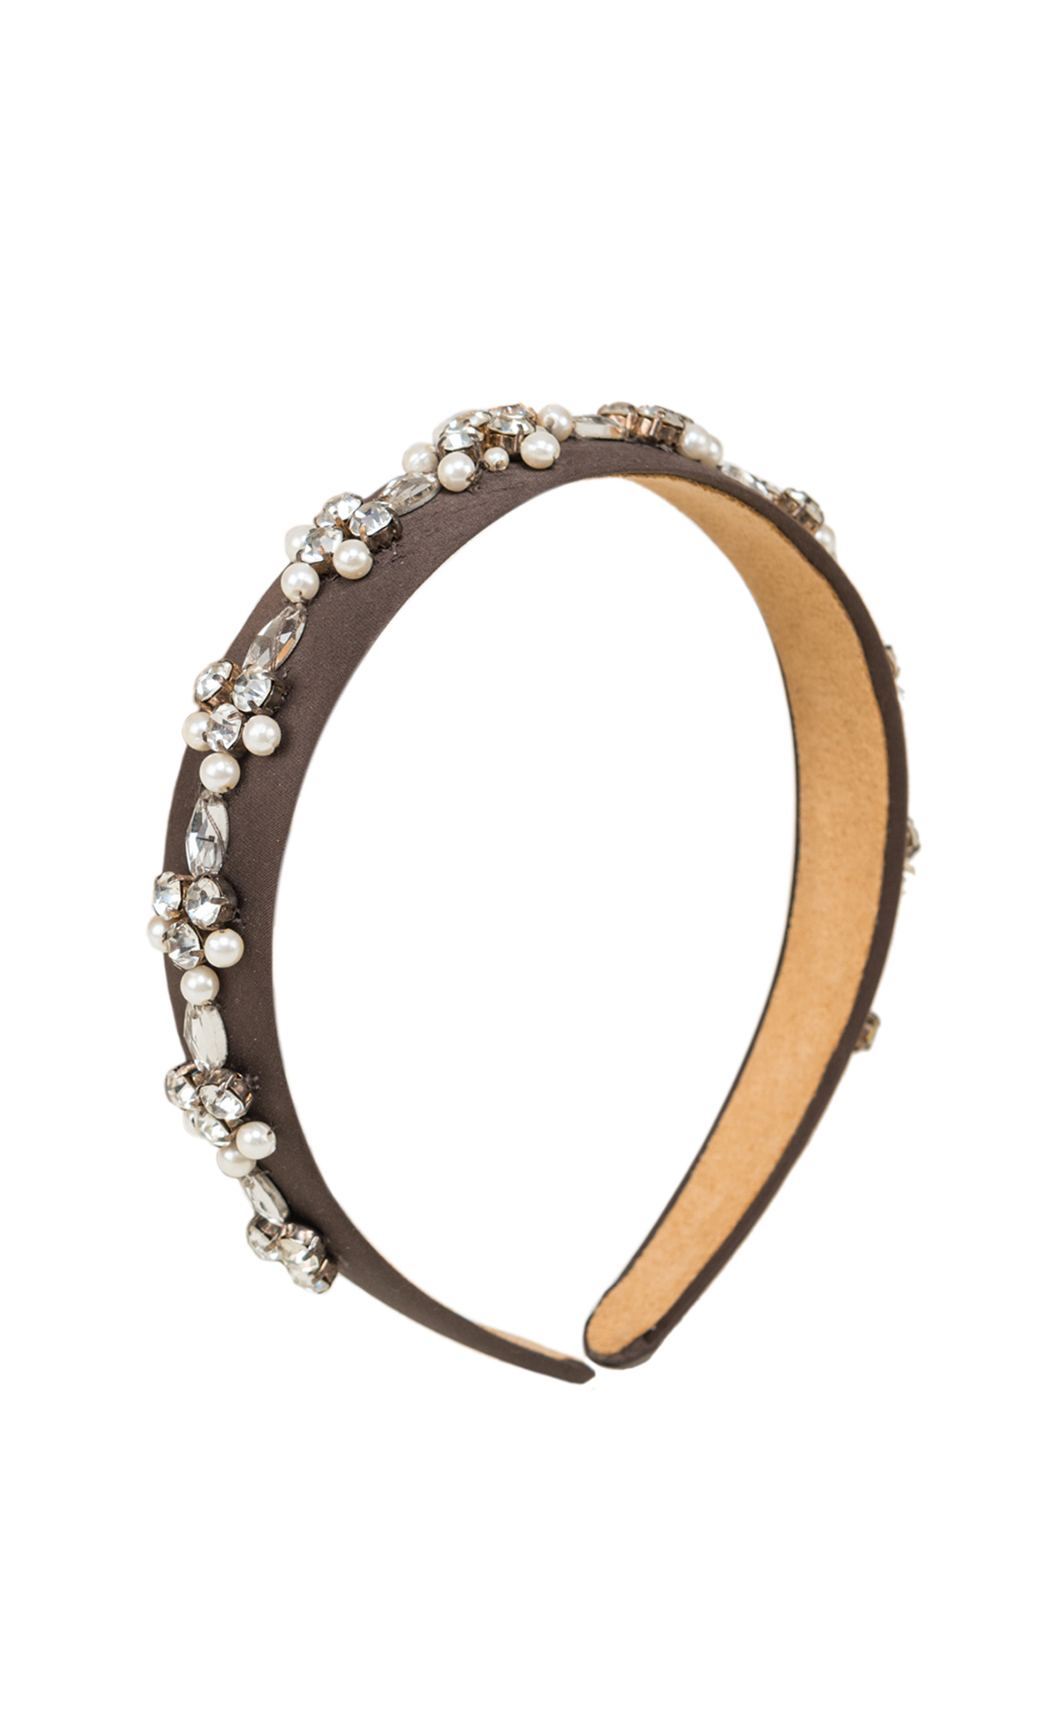 Black-Brown Hair Band with Pearls and Rhinestones